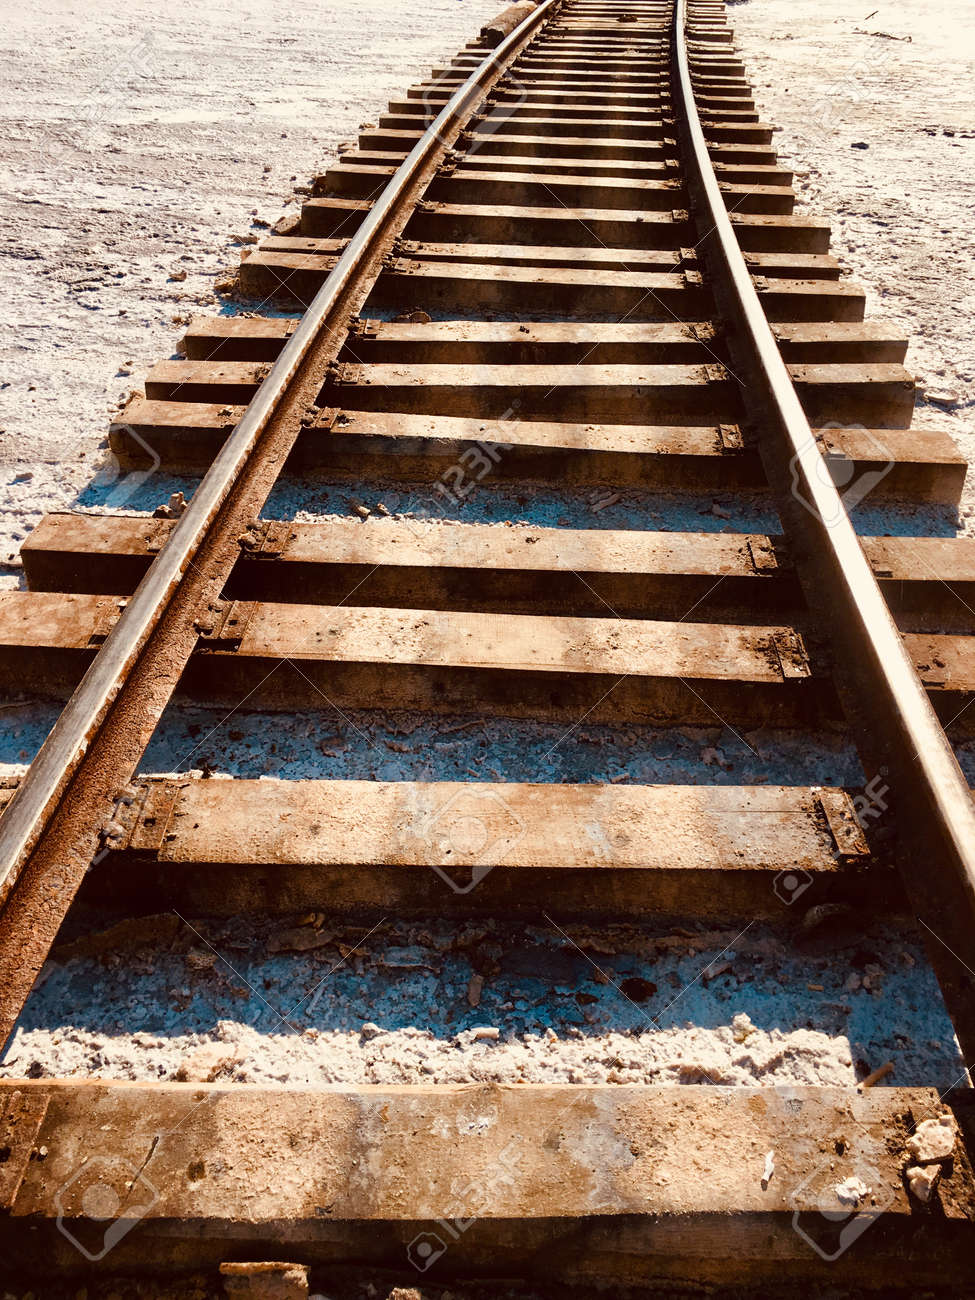 sleepers and rails run along the ground that is covered with white salt - 161122599